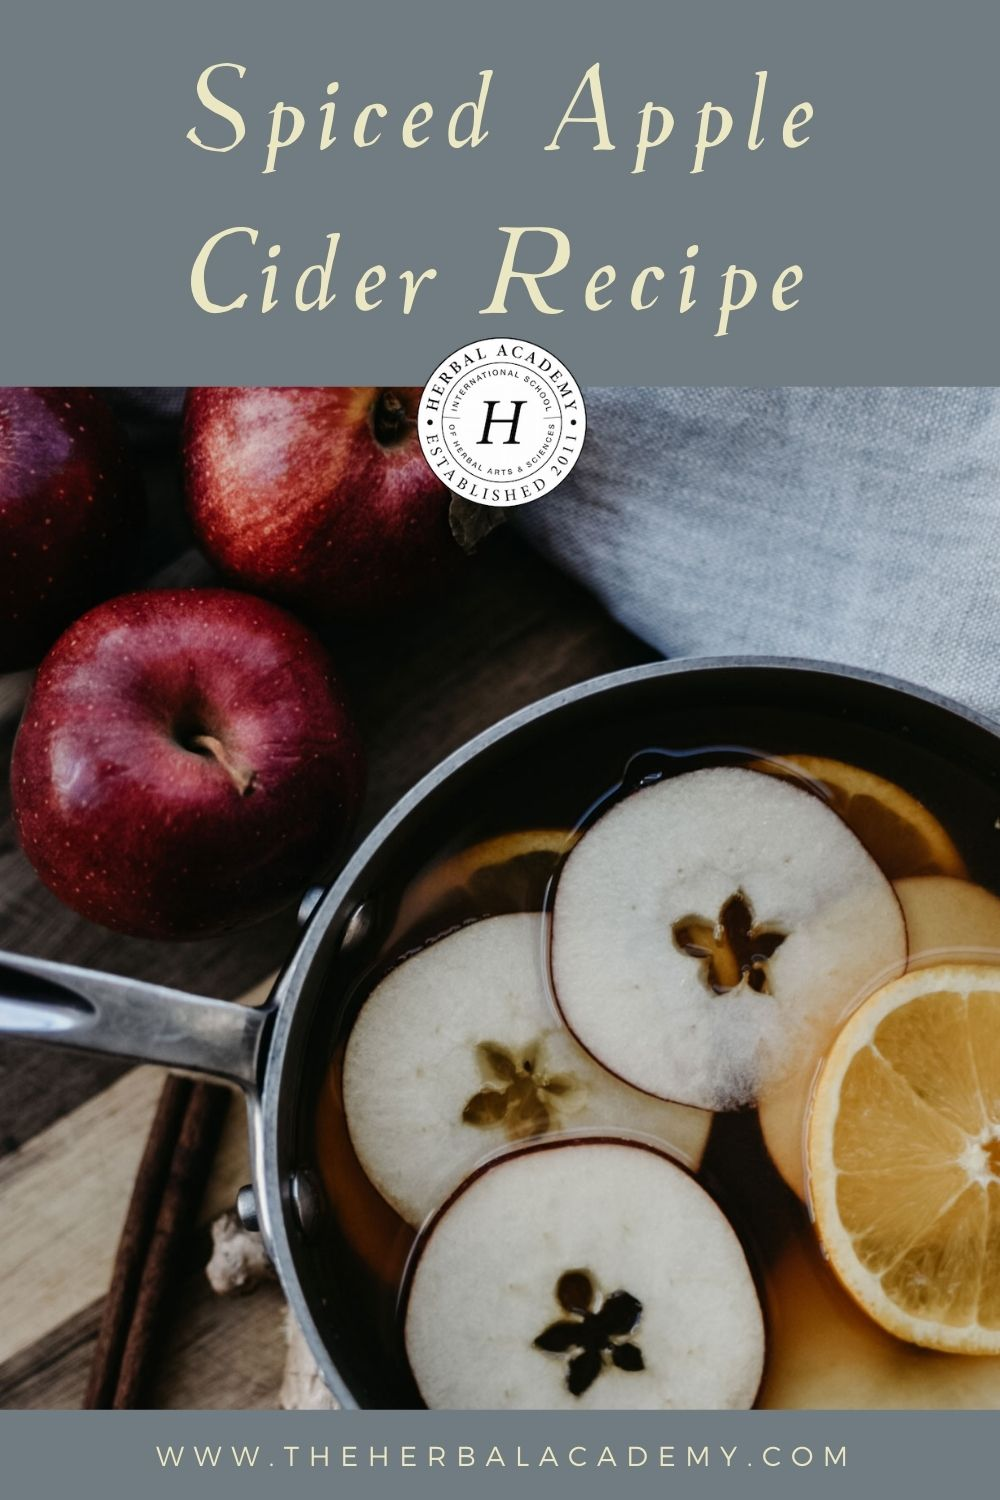 Spiced Apple Cider Recipe Pinterest Graphic